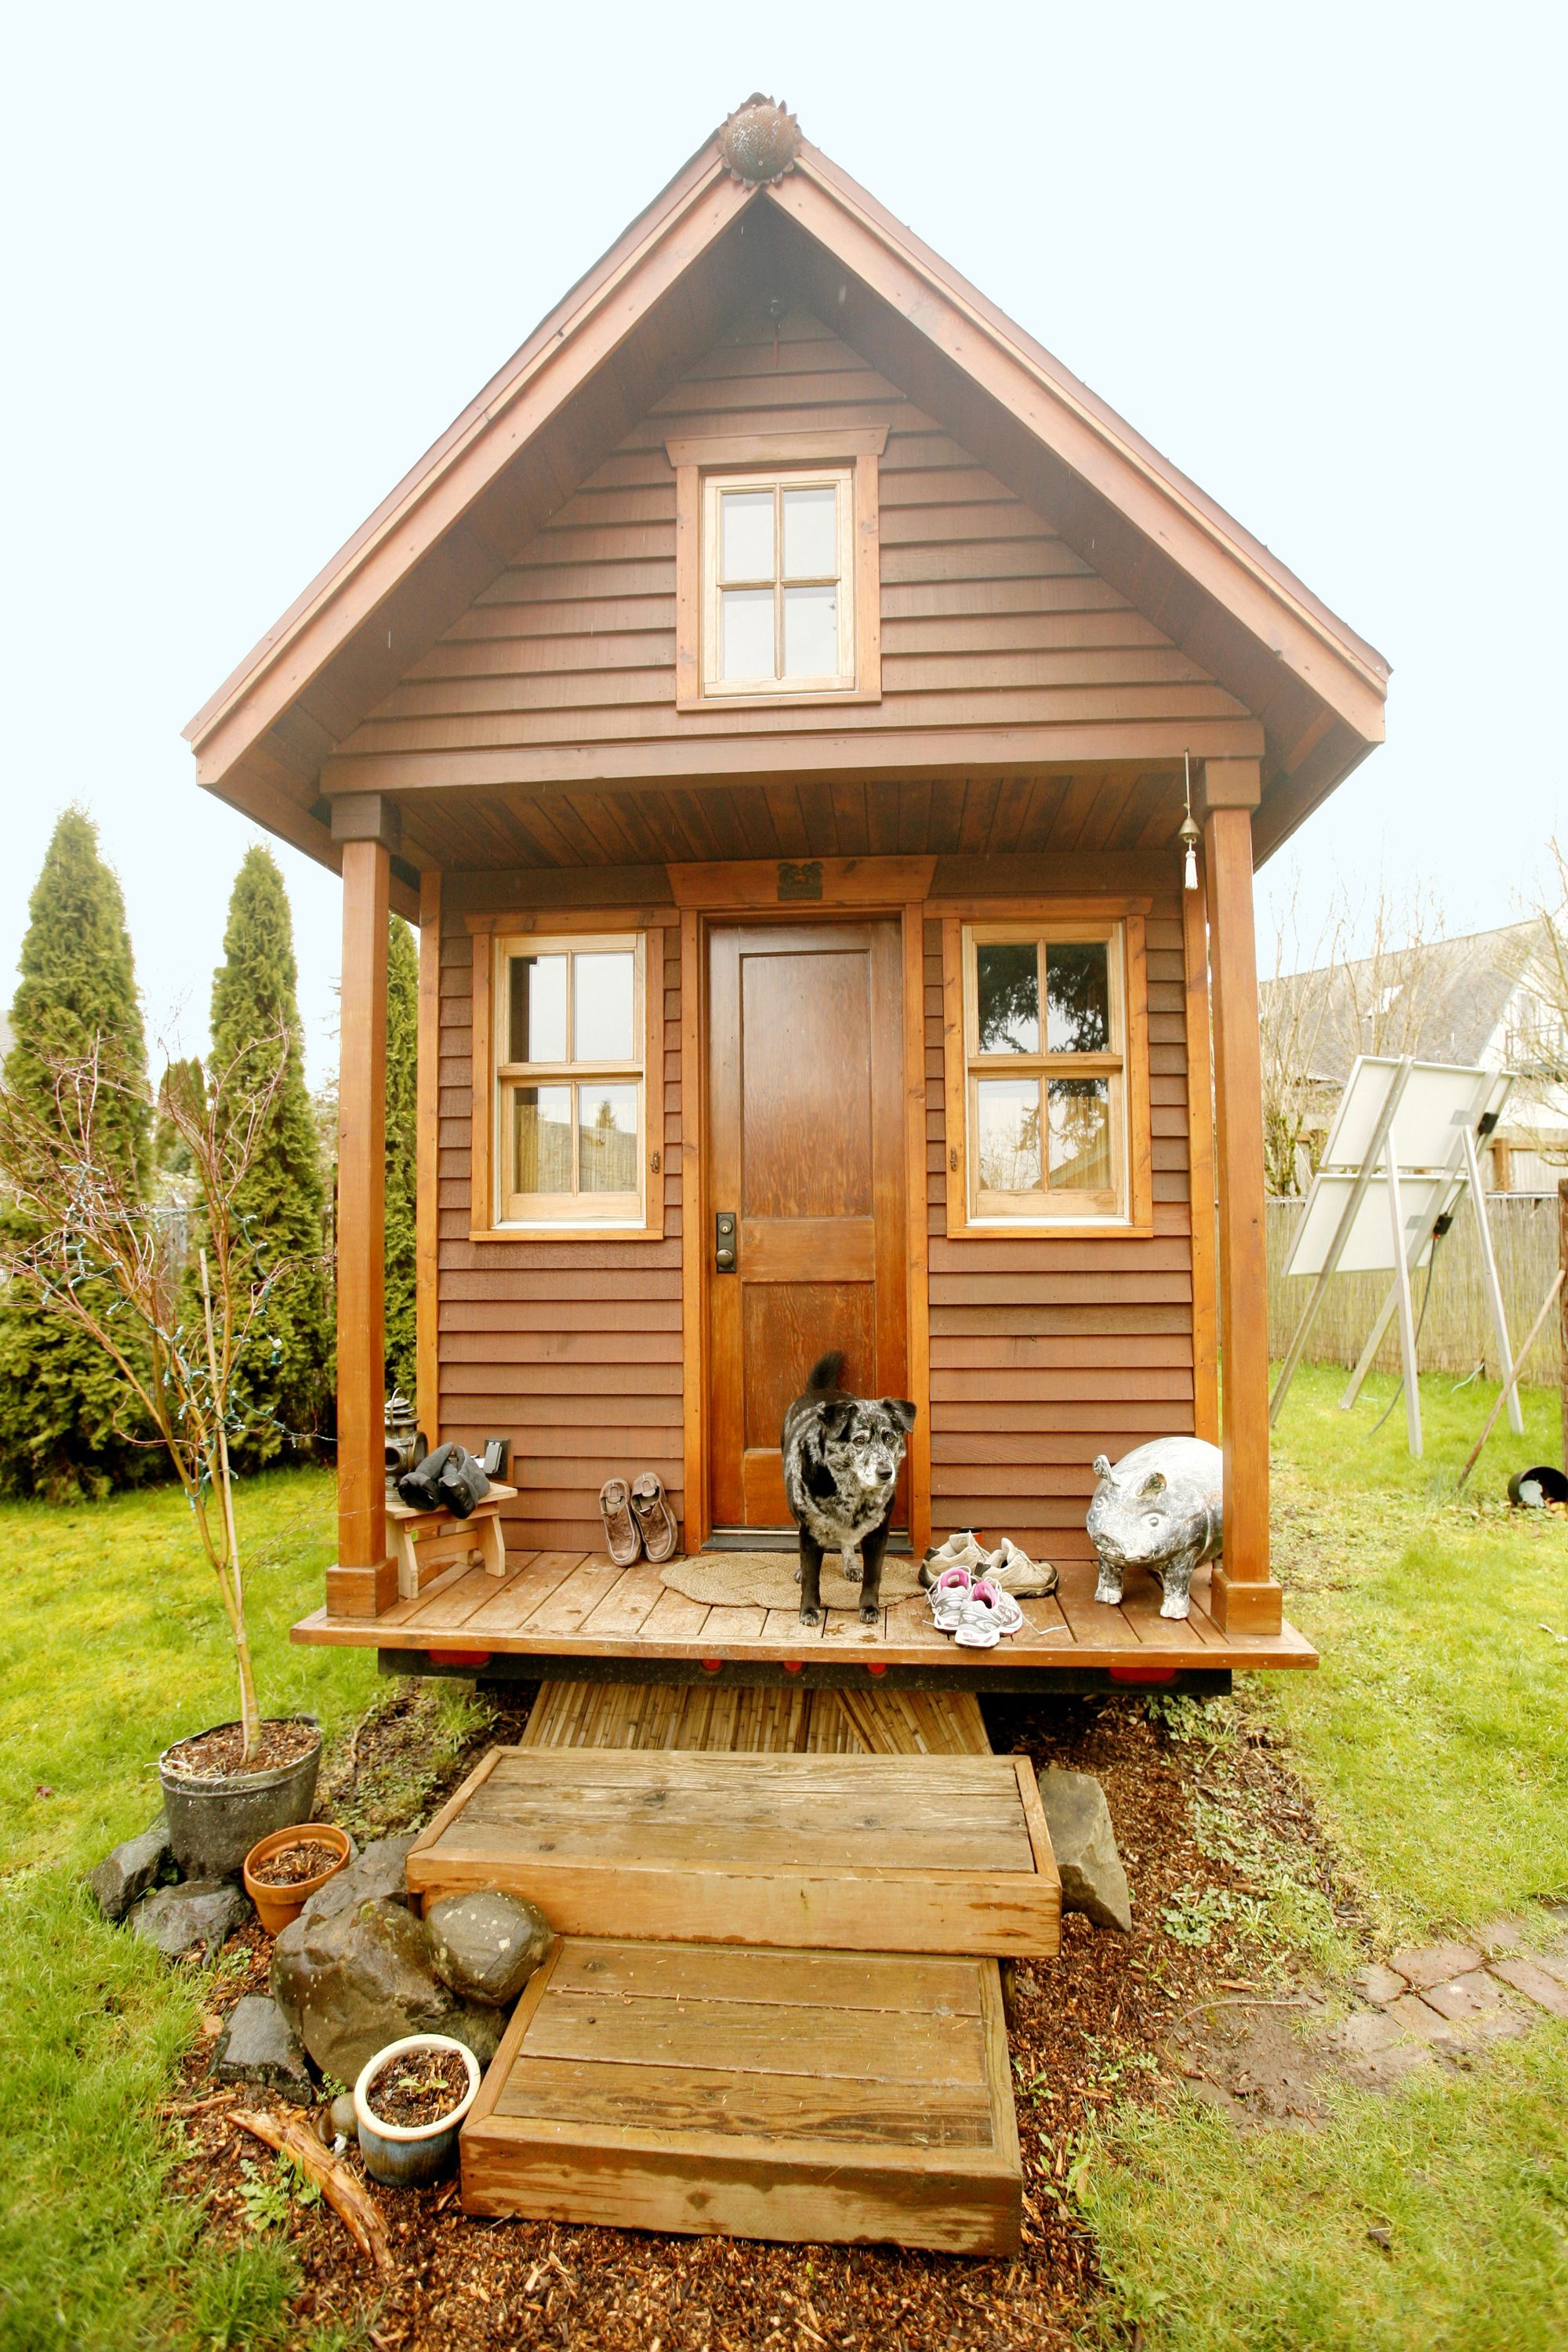 This Tiny House Helped Save Its Owners Life